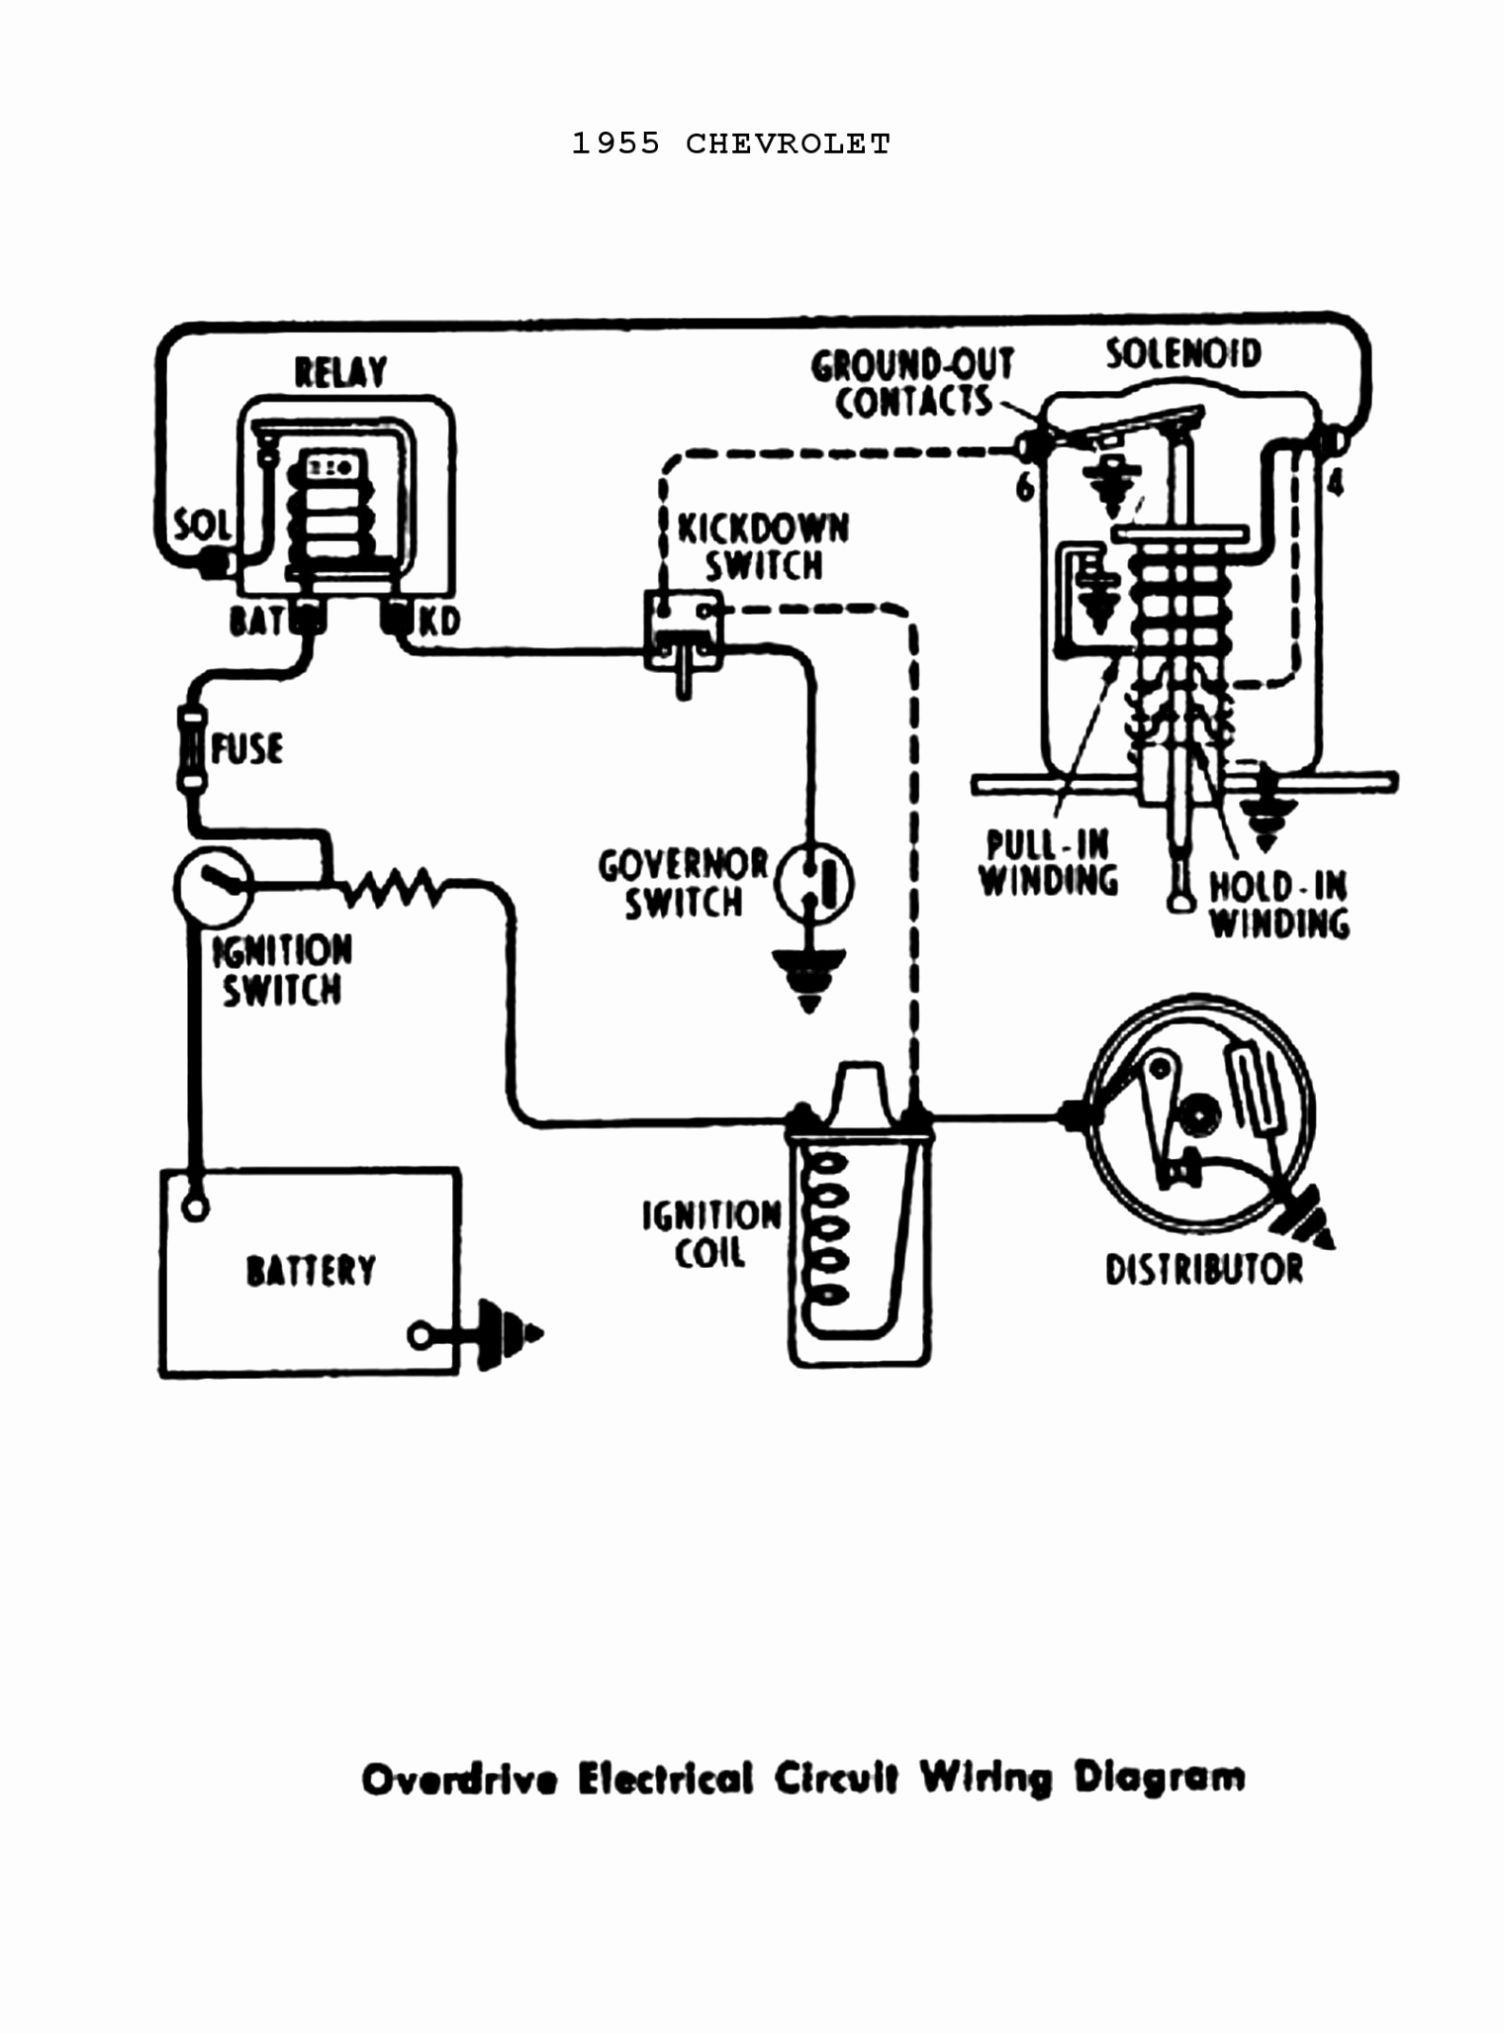 small resolution of unique motorola alternator wiring diagram john deere diagrams digramssample diagramimages wiringdiagramsample wiringdiagram